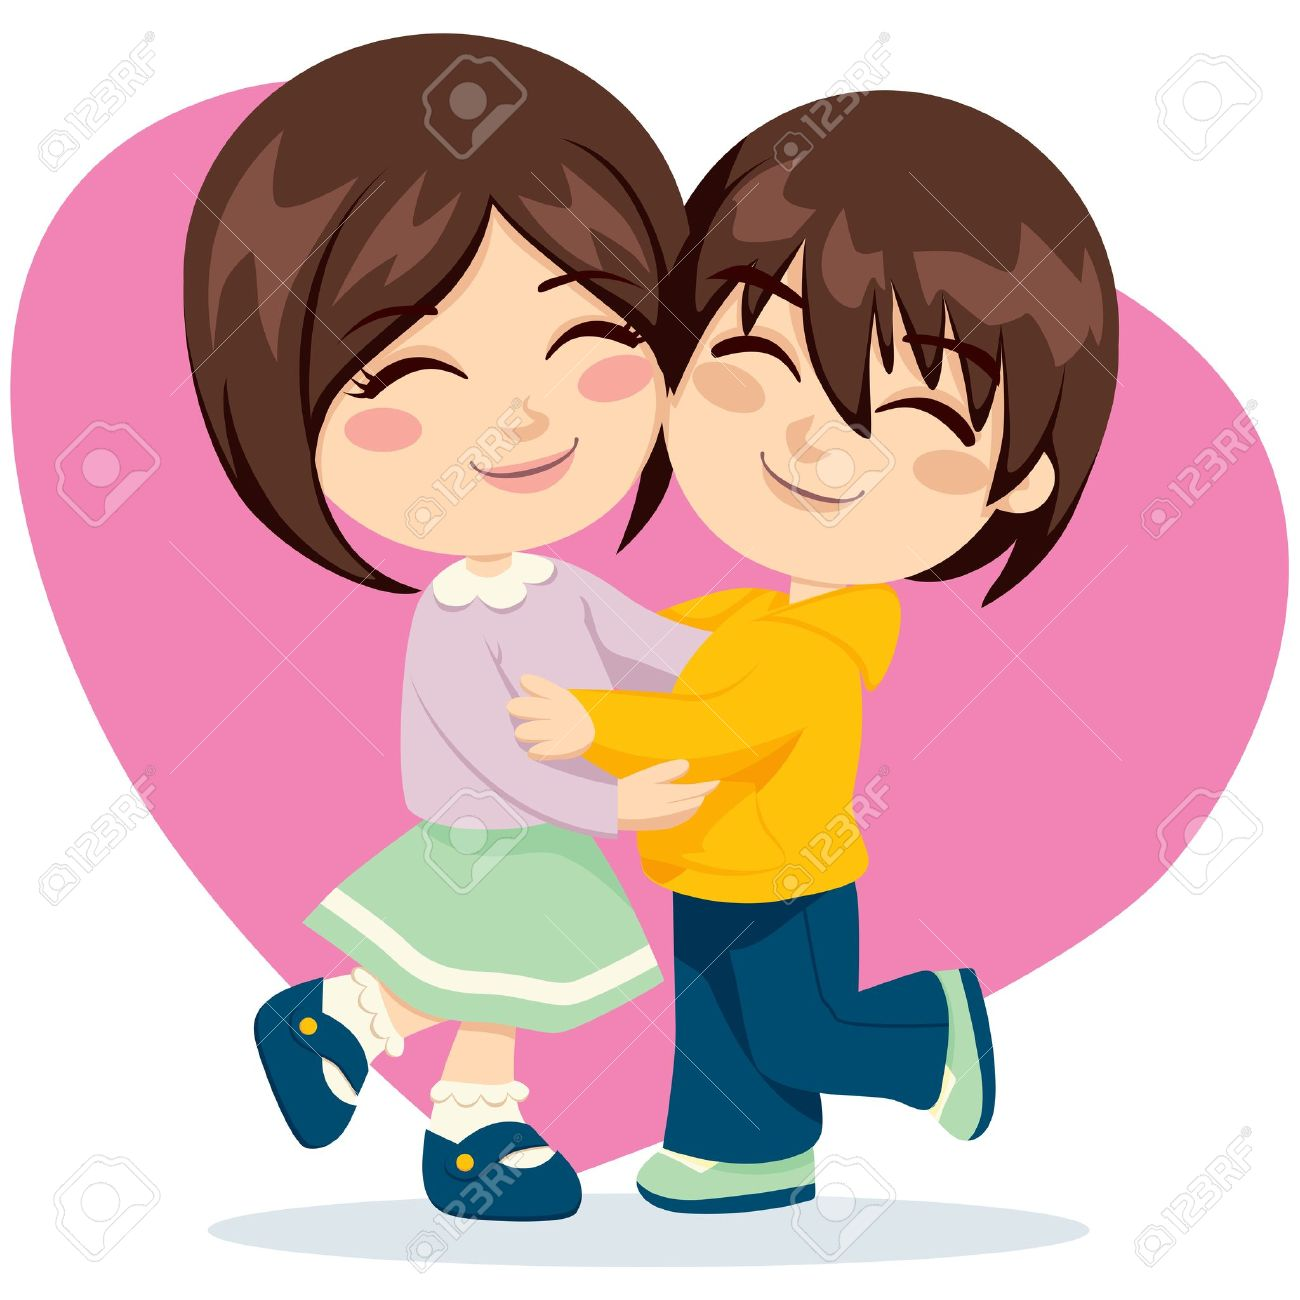 10504778-Adorable-brother-and-sister-happy-together-in-lovely-hug-Stock-Vector.jpg